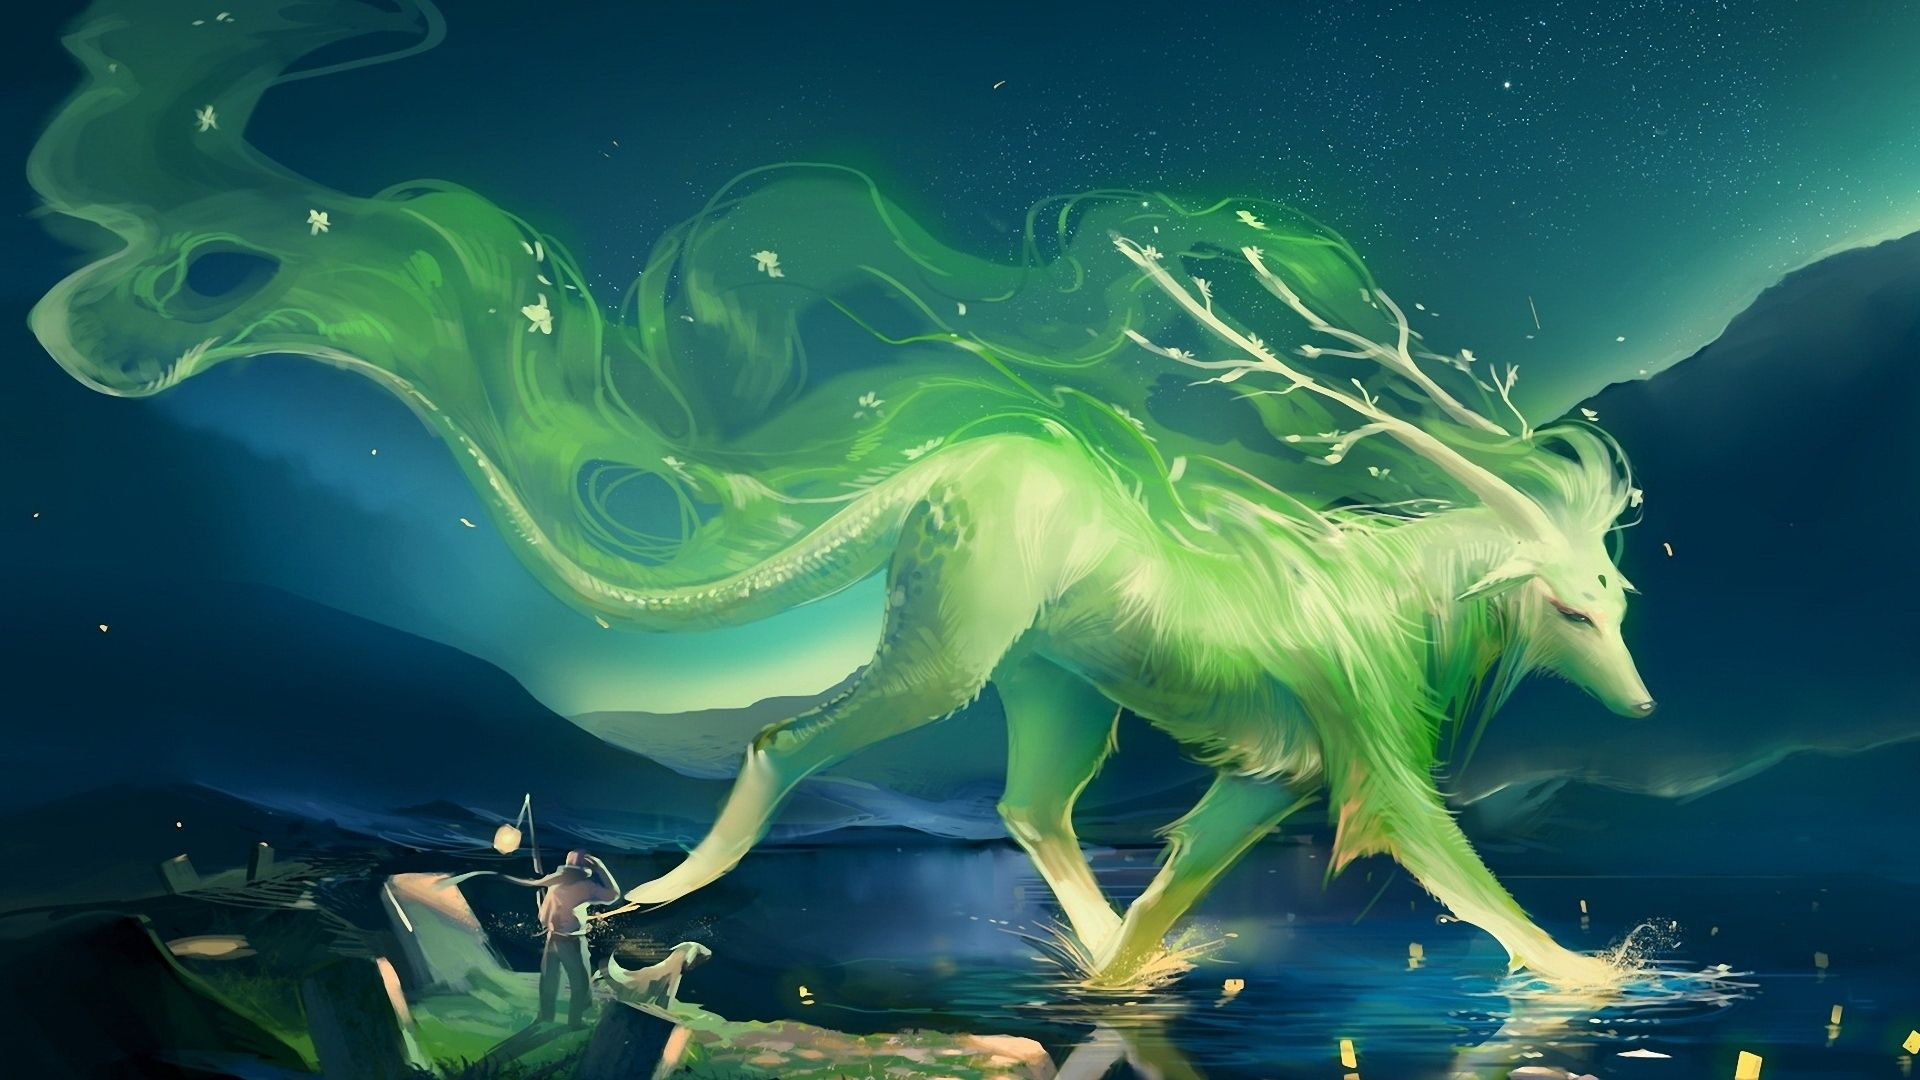 Fantasy Anime For Wallpaper | Mythical creatures art, Mythical creatures,  Magical creatures